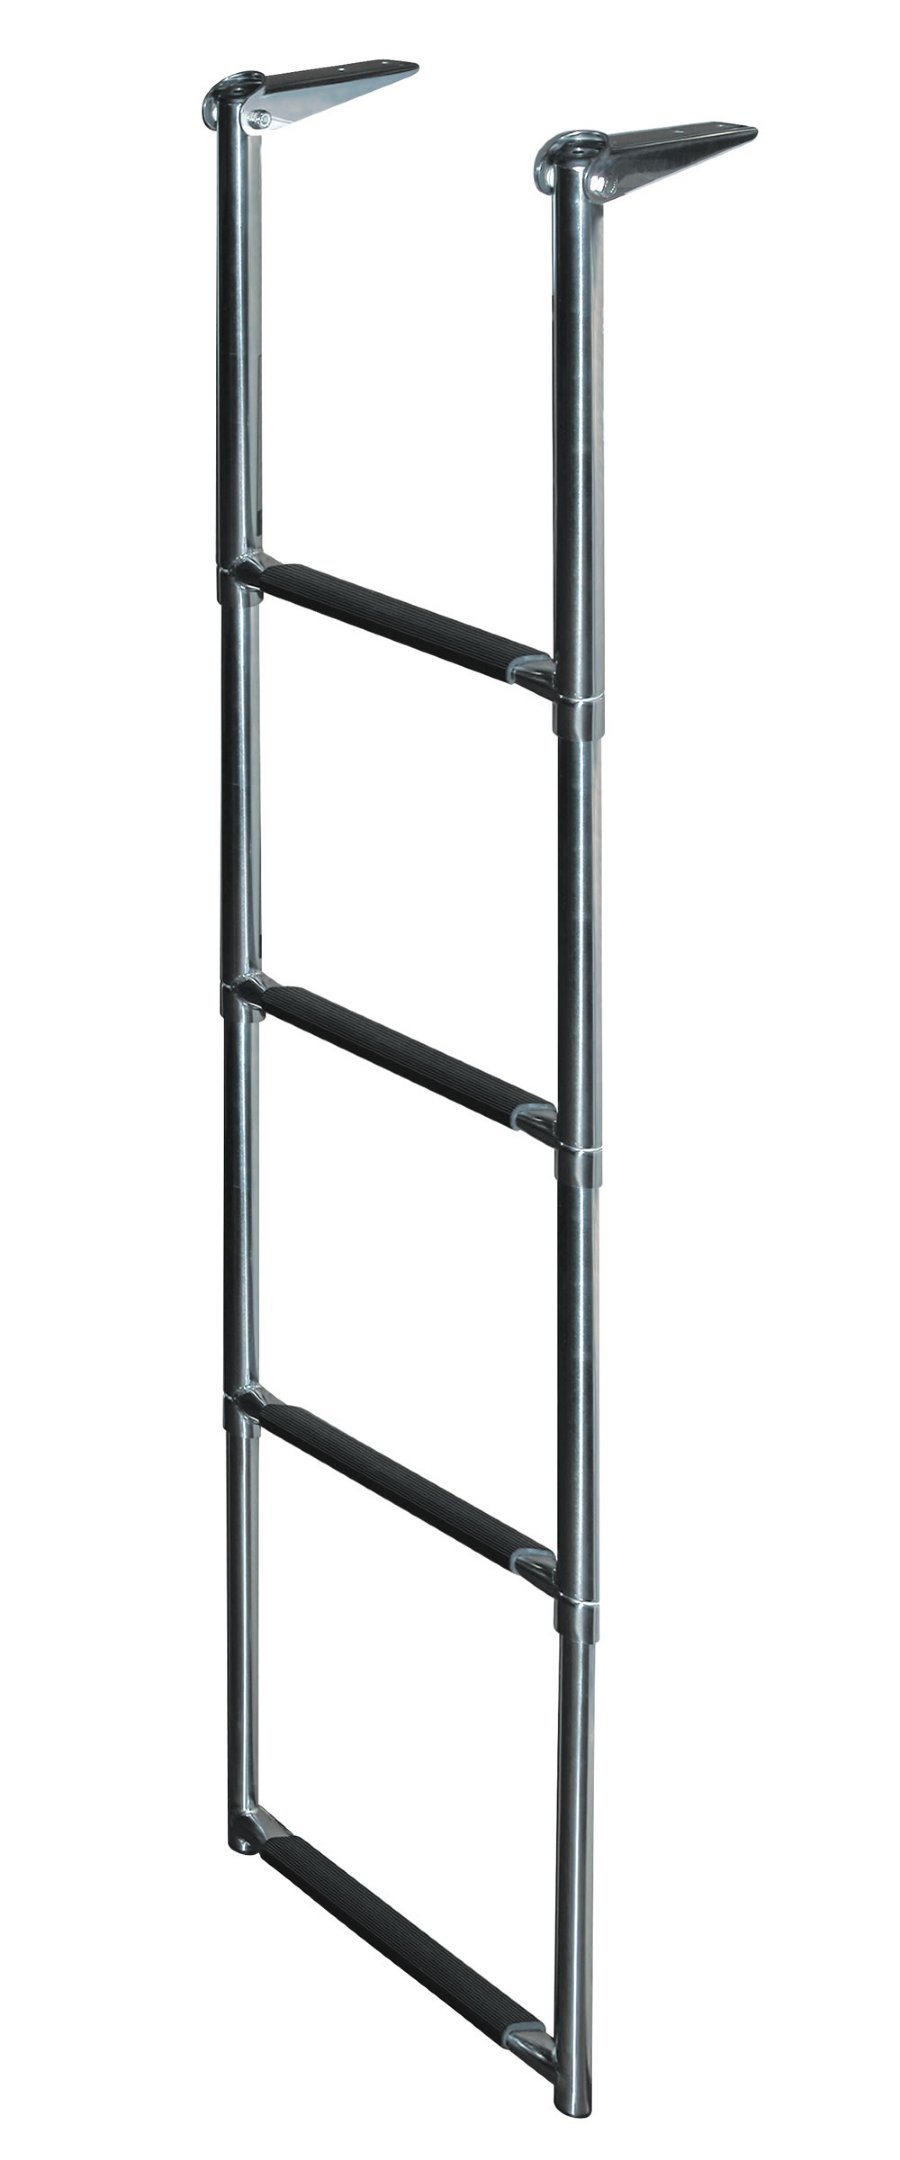 4 Step Stainless Steel Telescoping Transom Drop Ladders